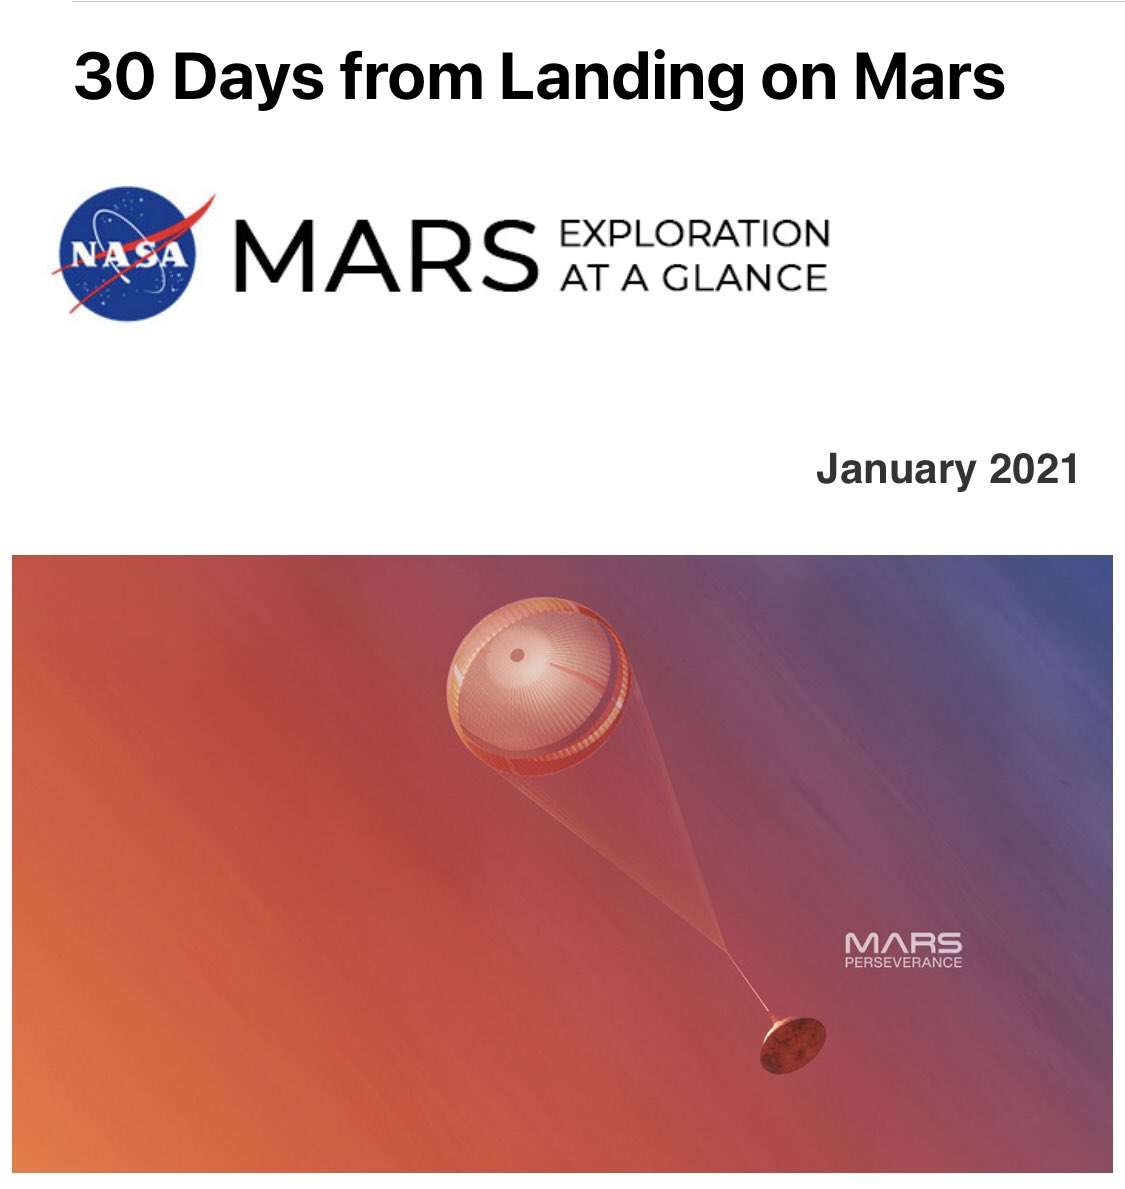 After 30 days my name will be on Mars. Excited  - #mars #NASA #nasa  #space #Perseverance